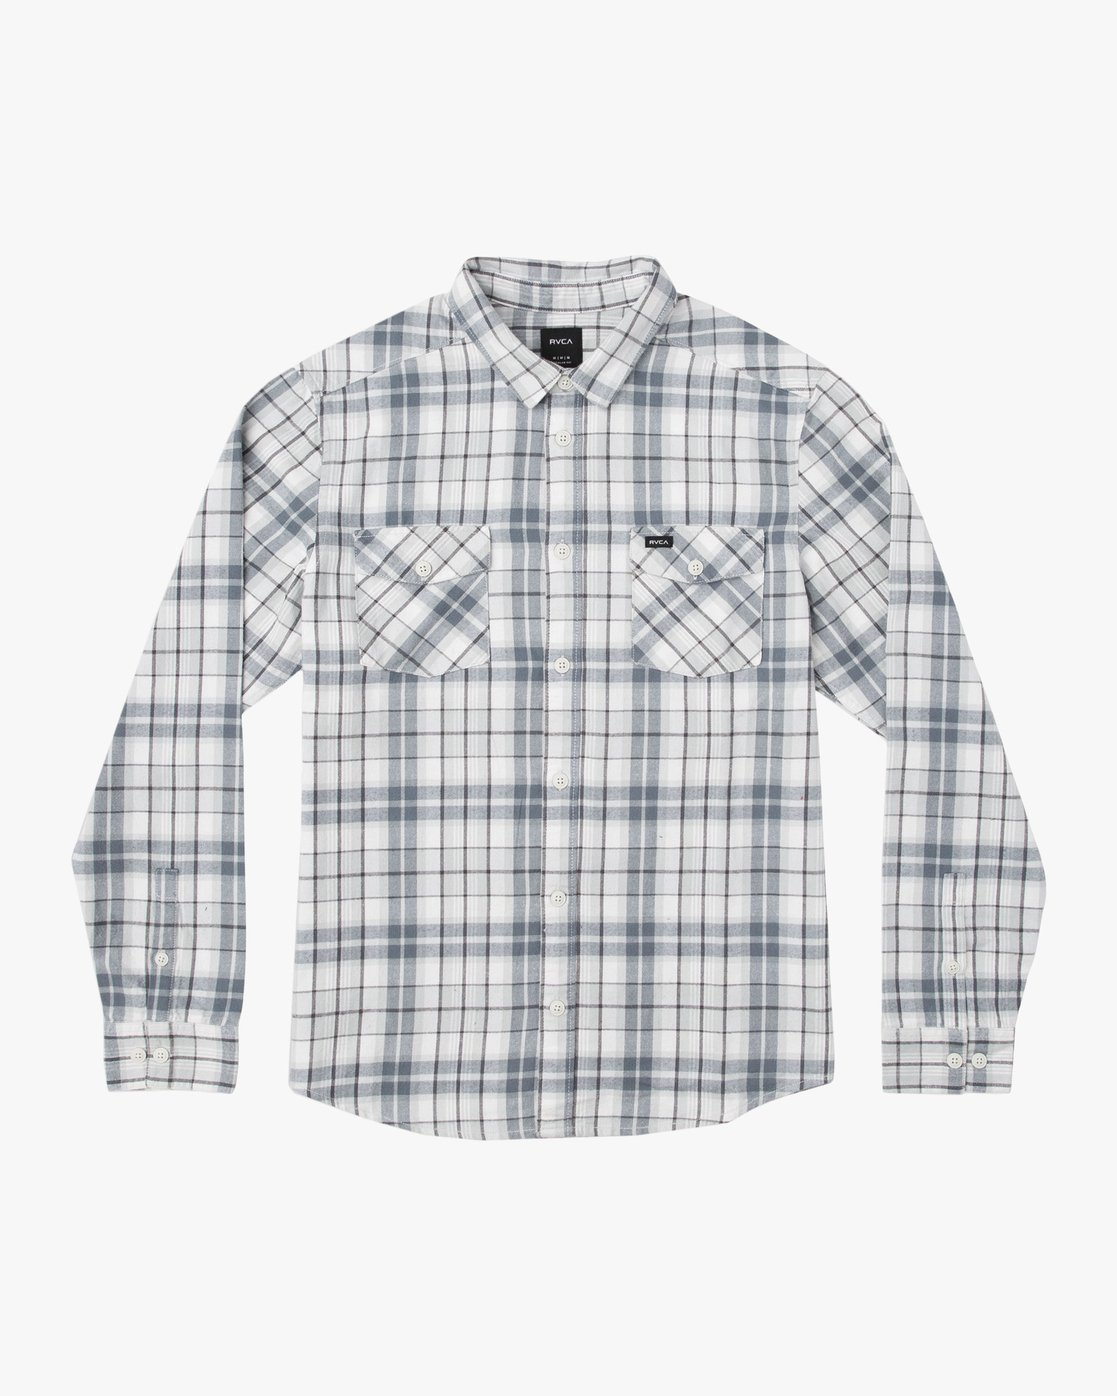 0 Boy's Watt Flannel Shirt Orange B553TRWF RVCA